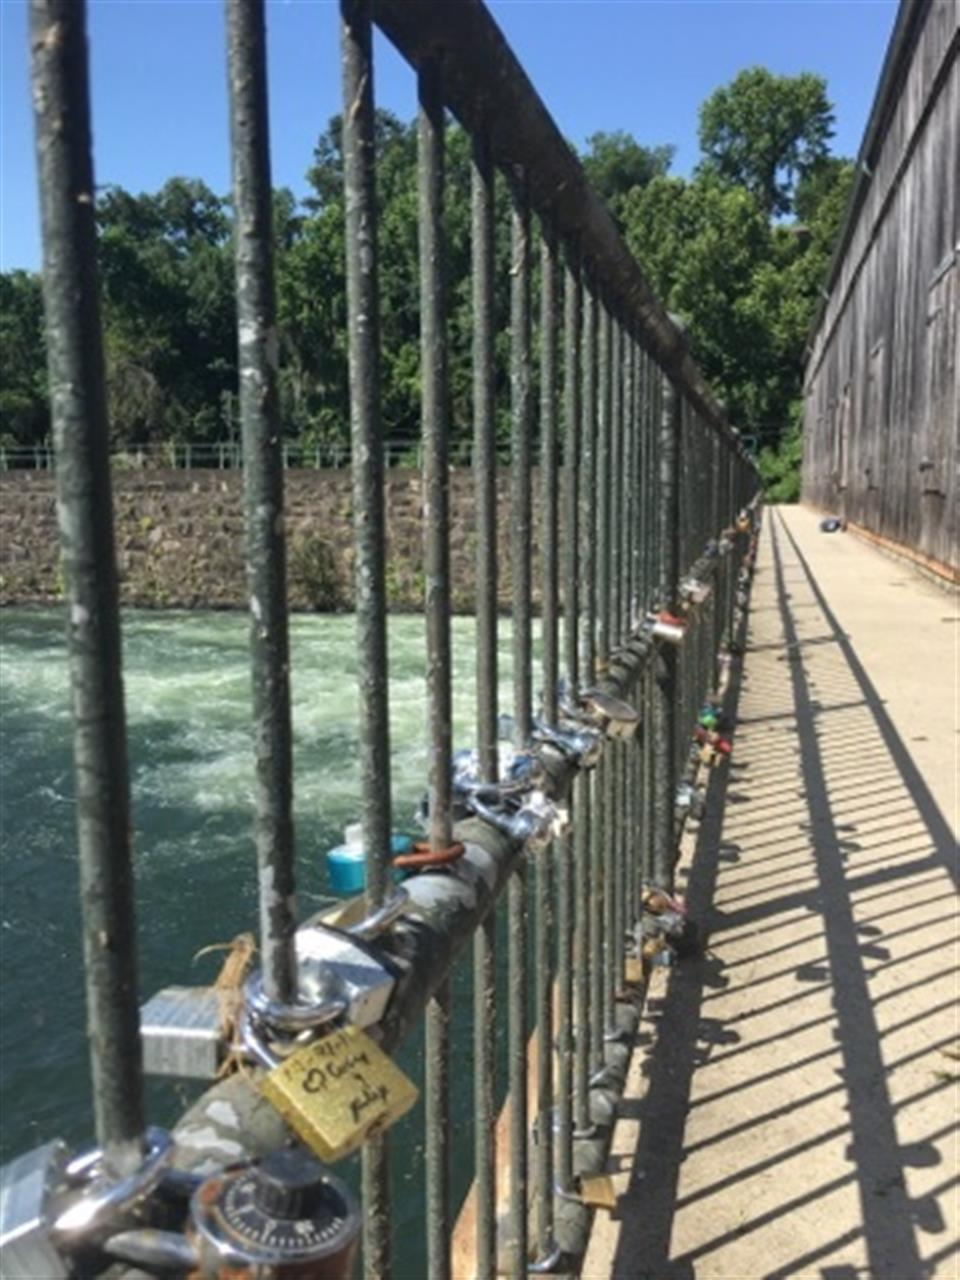 Hundreds of locks decorate the rails on the bridge over the Augusta Canal.  It's one of the best places in Augusta, GA to ride your bike!